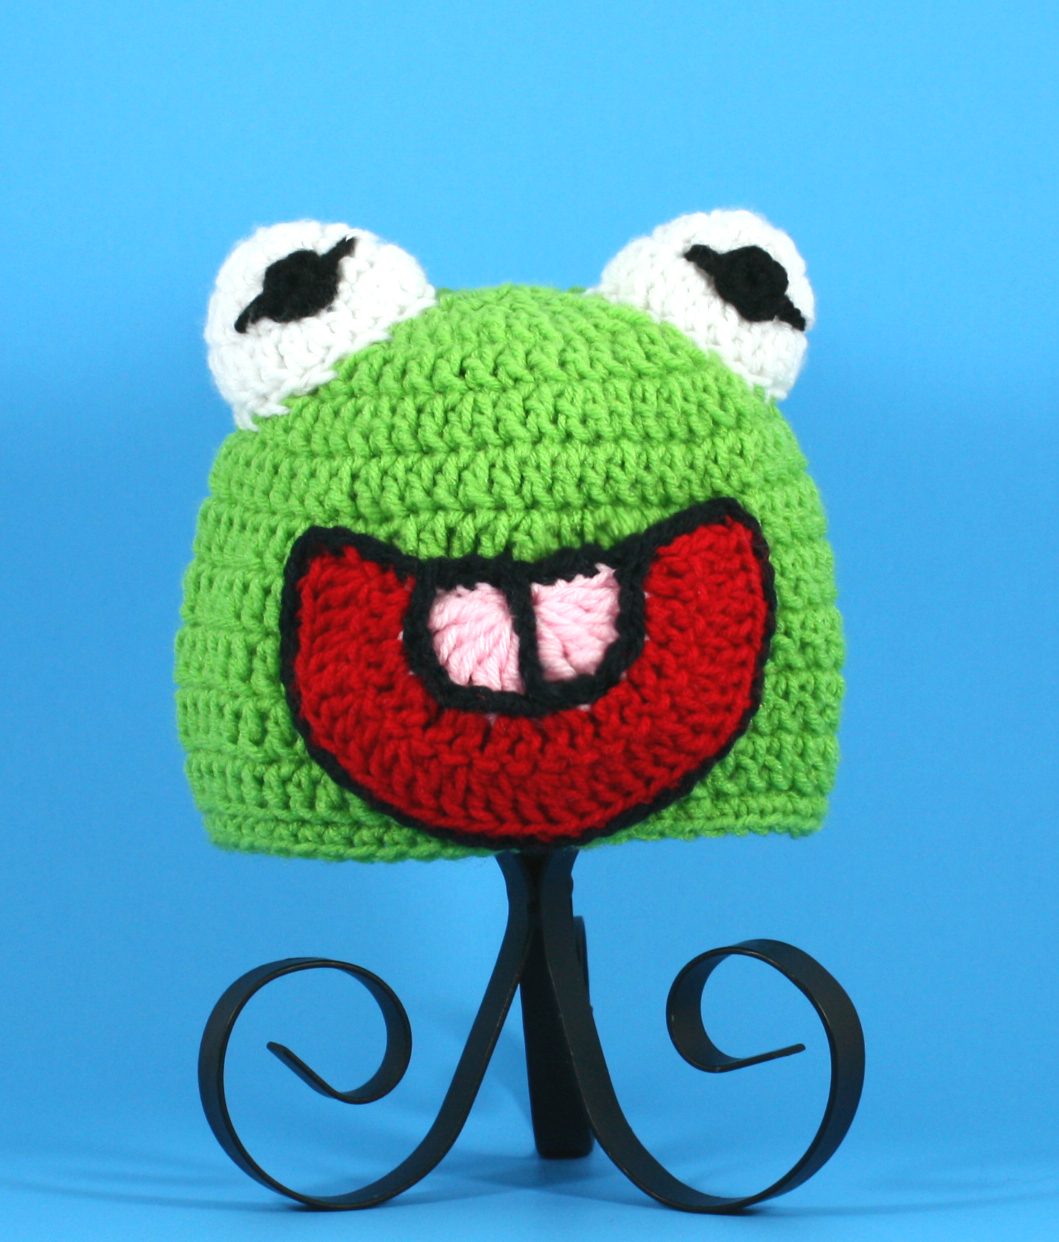 Kermit The Frog Hat from The Muppets